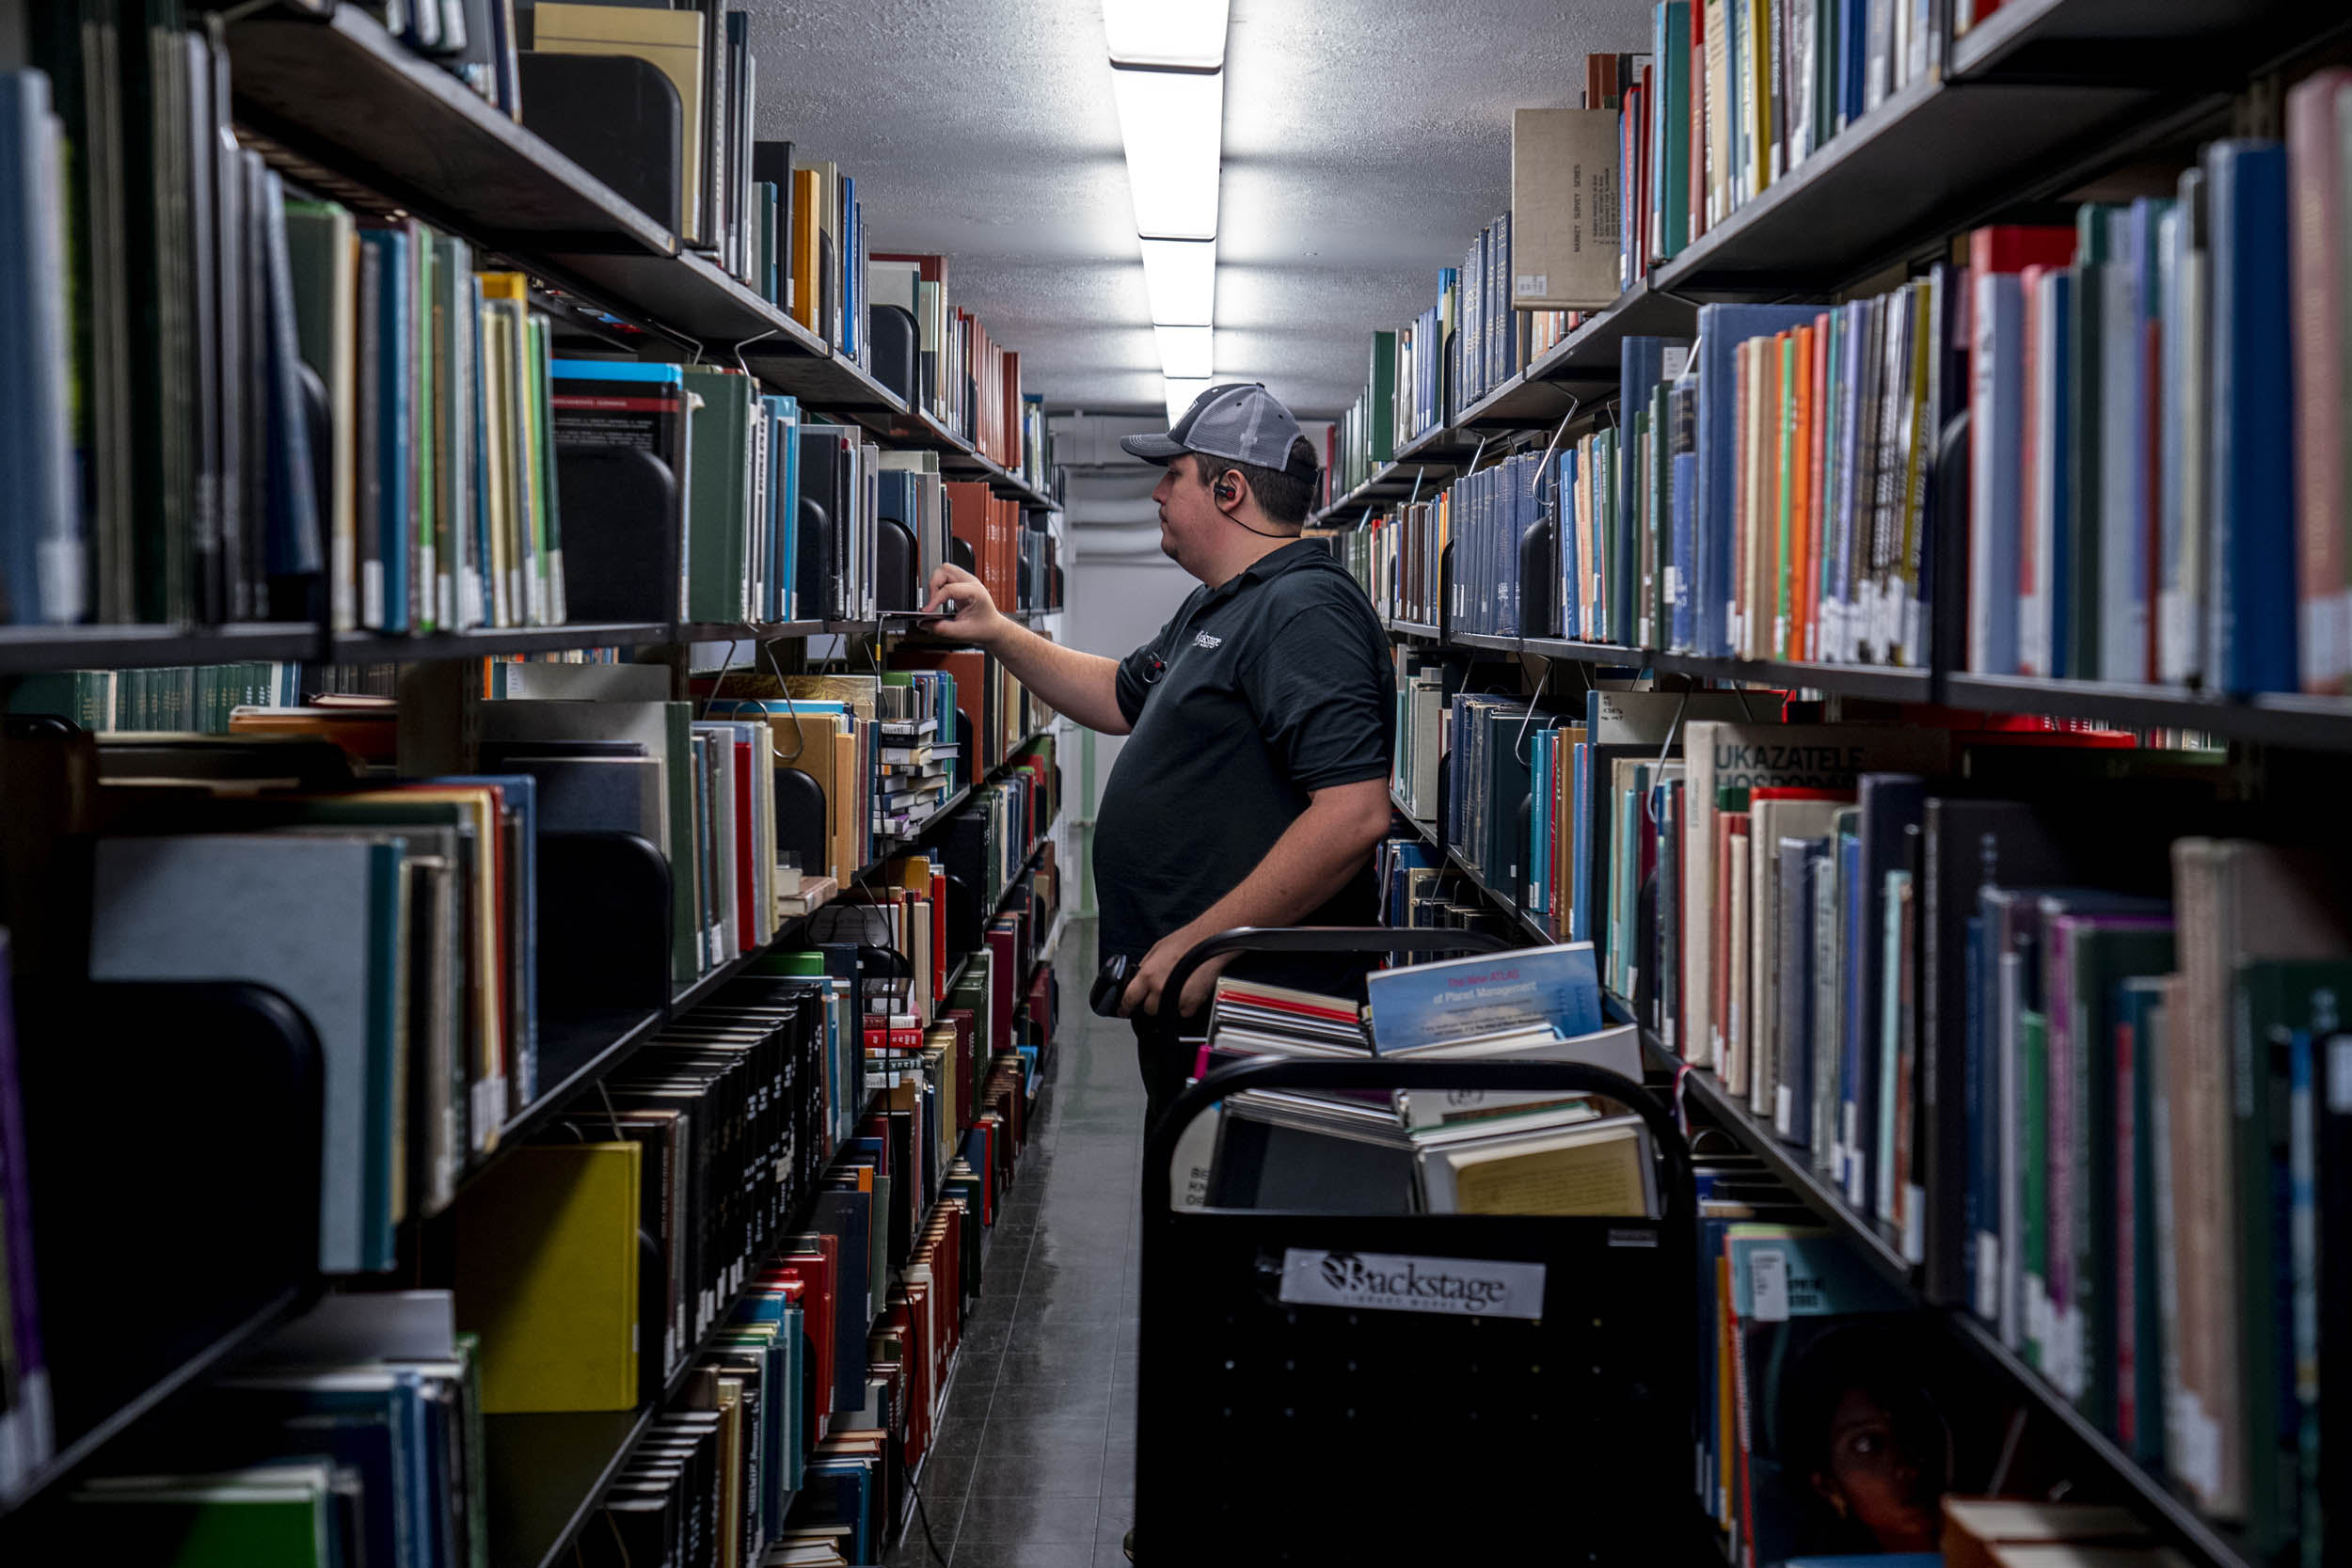 David Scott of Backstage Library Works selects a section of books in a particular call number as part of the process of moving them out of Alderman.